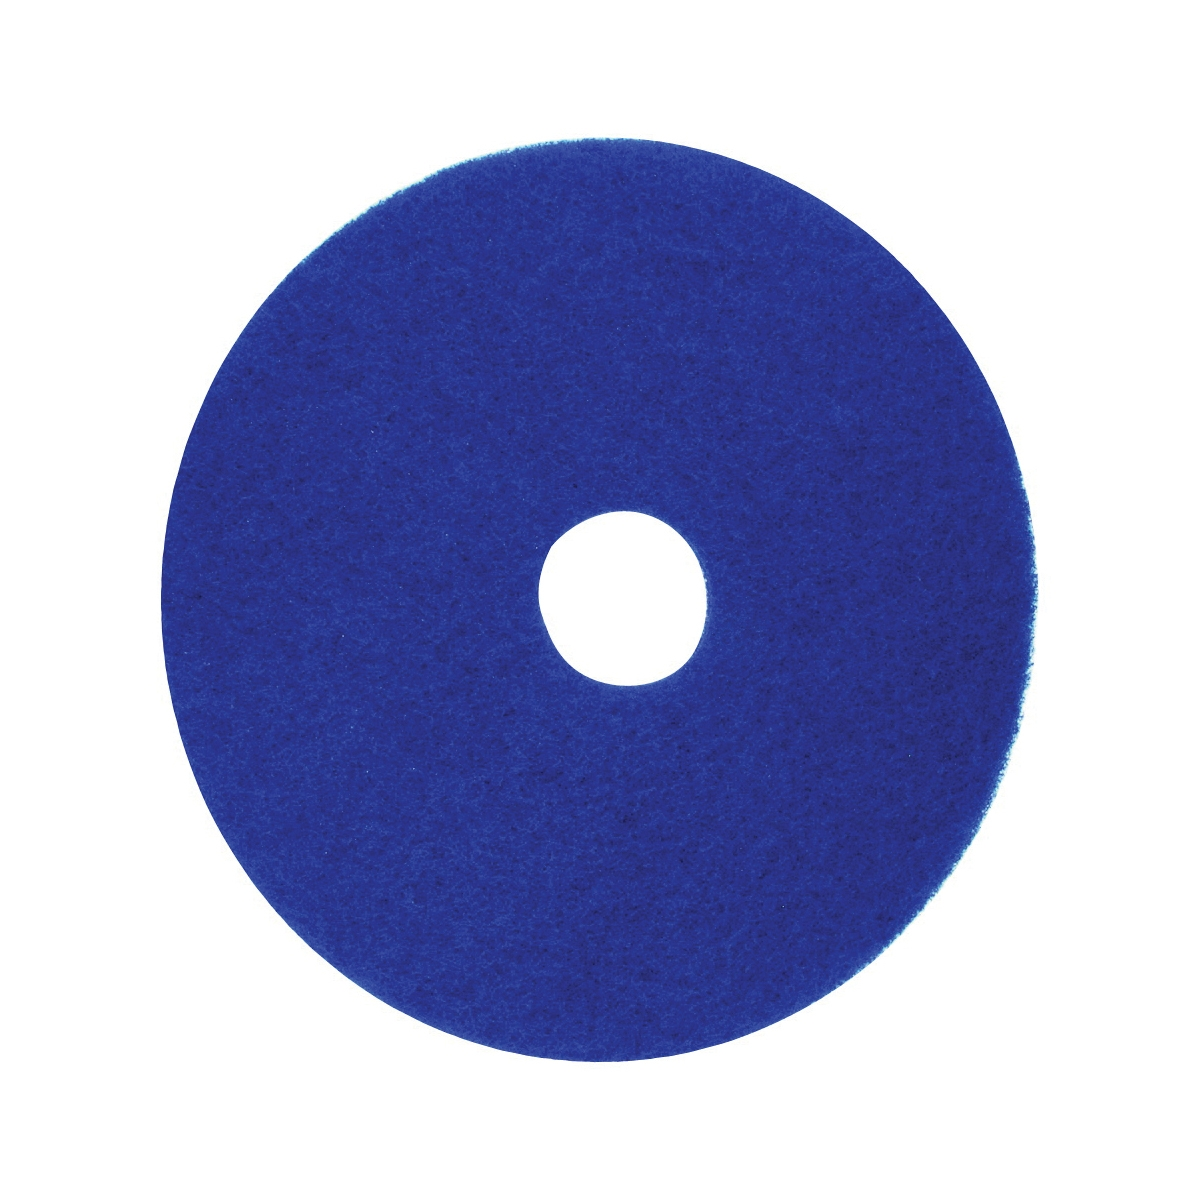 Picture of NORTH AMERICAN PAPER 421814 Cleaning Pad, 20 in Arbor, Blue